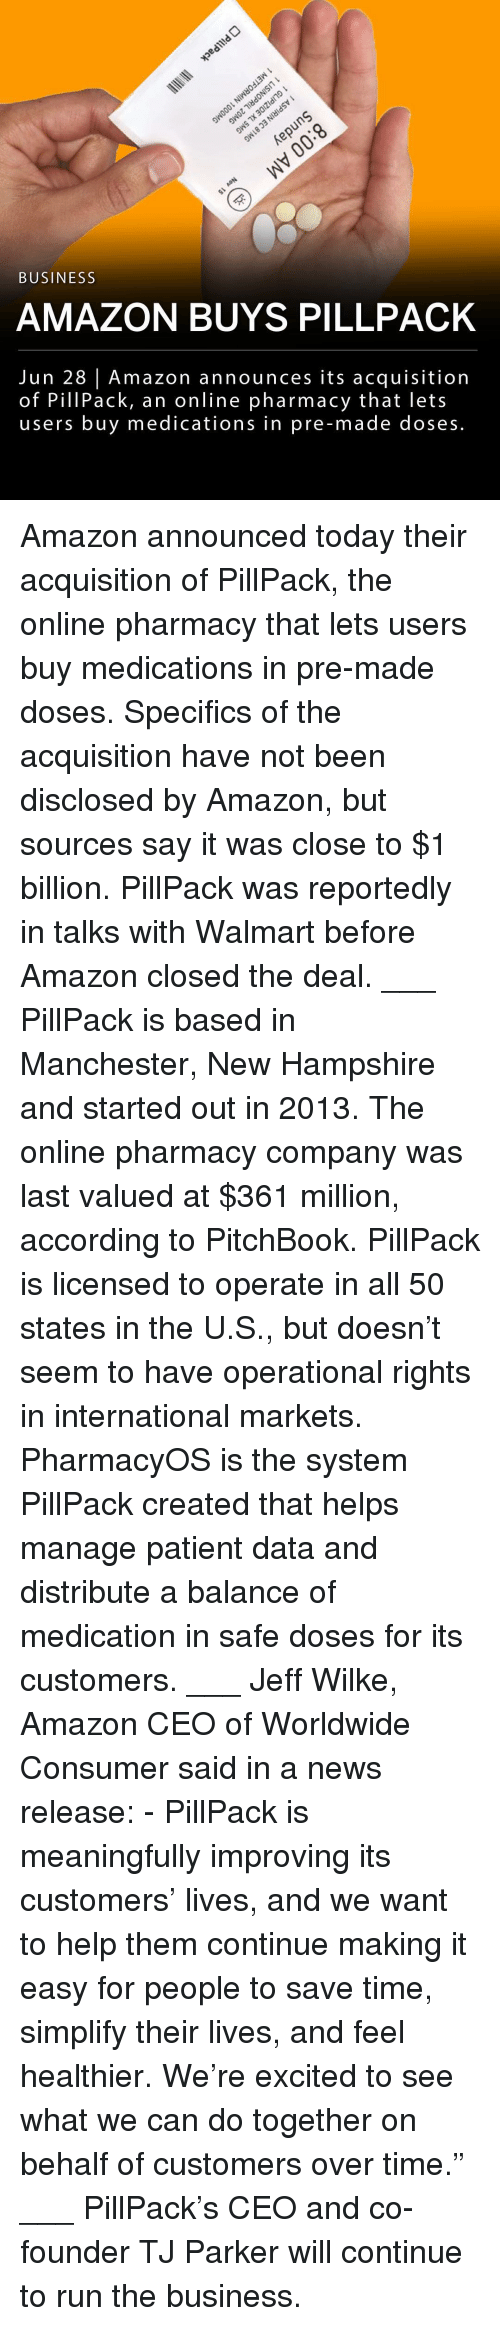 "All 50 States: 3  BUSINESS  AMAZON BUYS PILLPACK  Jun 28 | Amazon announces its acquisition  of PillPack, an online pharmacy that lets  users buy medications in pre-made doses. Amazon announced today their acquisition of PillPack, the online pharmacy that lets users buy medications in pre-made doses. Specifics of the acquisition have not been disclosed by Amazon, but sources say it was close to $1 billion. PillPack was reportedly in talks with Walmart before Amazon closed the deal. ___ PillPack is based in Manchester, New Hampshire and started out in 2013. The online pharmacy company was last valued at $361 million, according to PitchBook. PillPack is licensed to operate in all 50 states in the U.S., but doesn't seem to have operational rights in international markets. PharmacyOS is the system PillPack created that helps manage patient data and distribute a balance of medication in safe doses for its customers. ___ Jeff Wilke, Amazon CEO of Worldwide Consumer said in a news release: - PillPack is meaningfully improving its customers' lives, and we want to help them continue making it easy for people to save time, simplify their lives, and feel healthier. We're excited to see what we can do together on behalf of customers over time."" ___ PillPack's CEO and co-founder TJ Parker will continue to run the business."